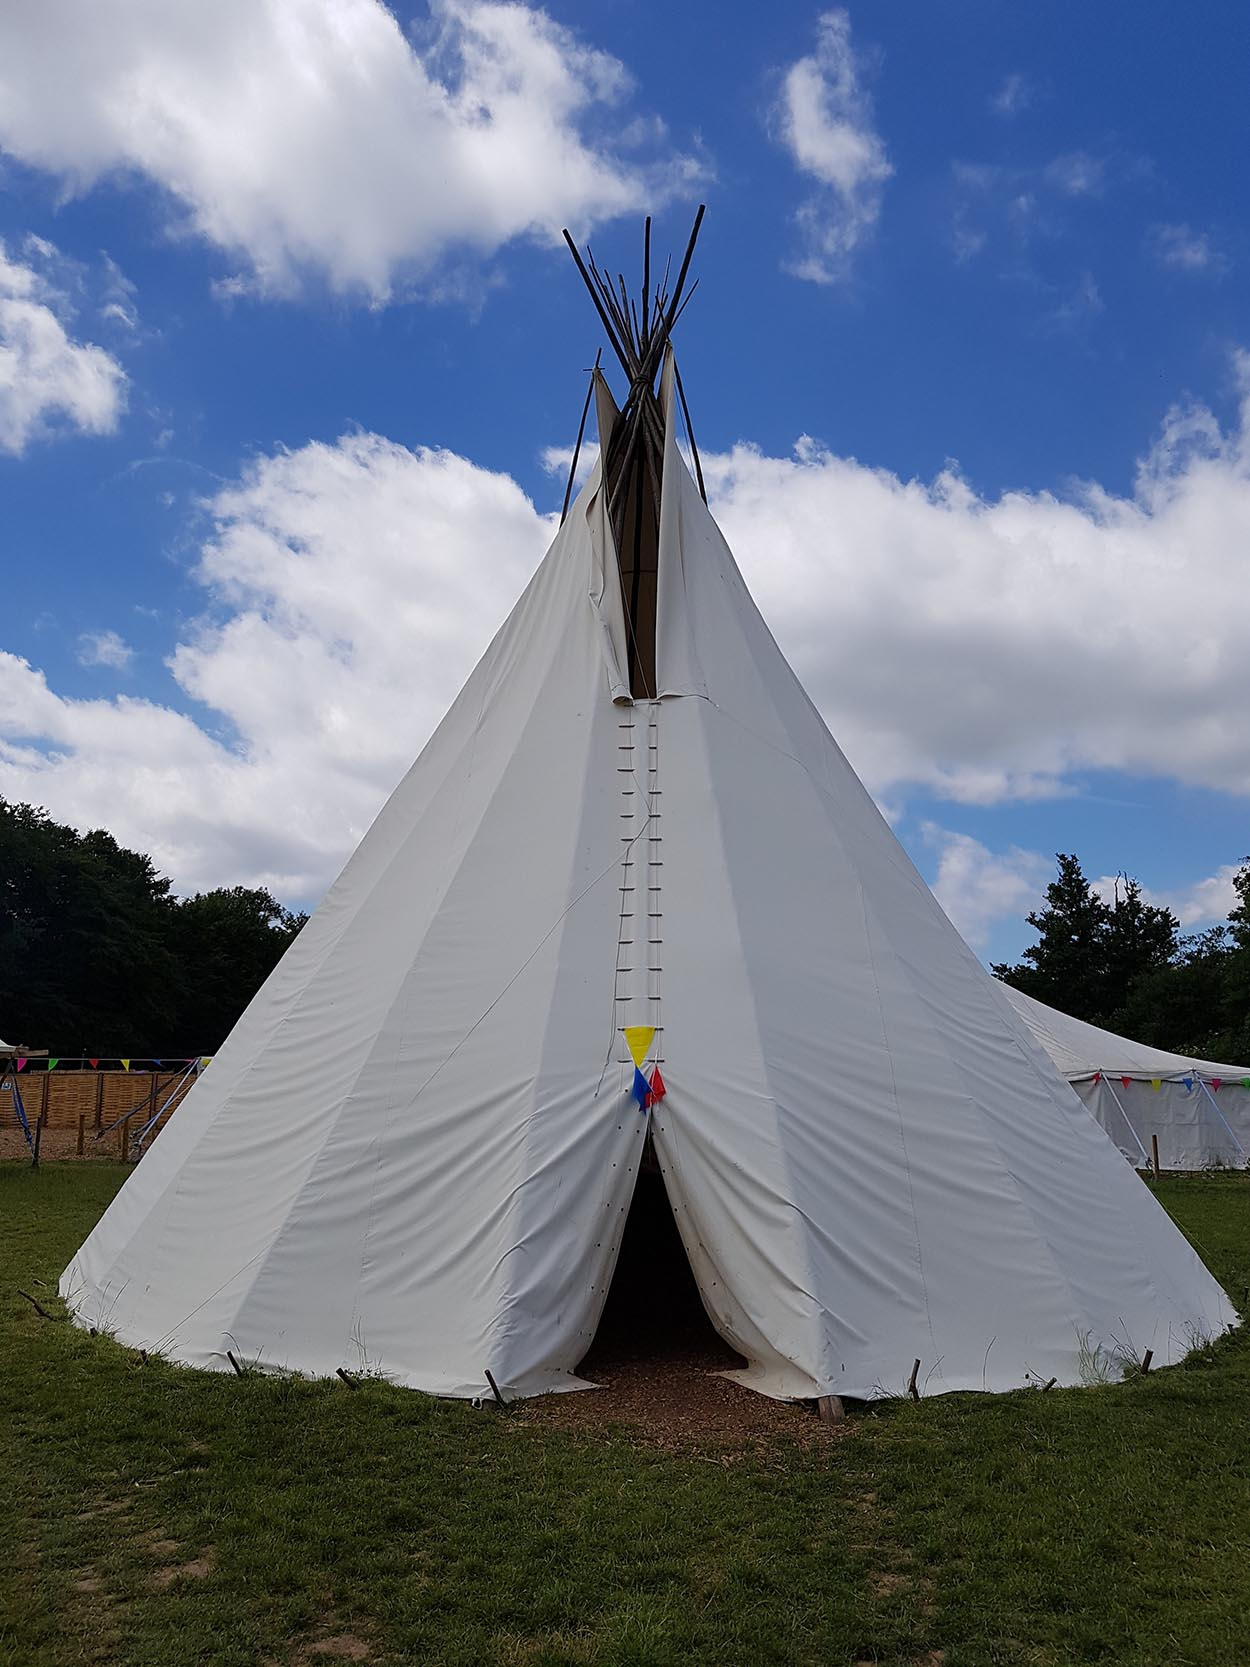 The amazing tipi at WoWo campsite - so striking against the blue sky